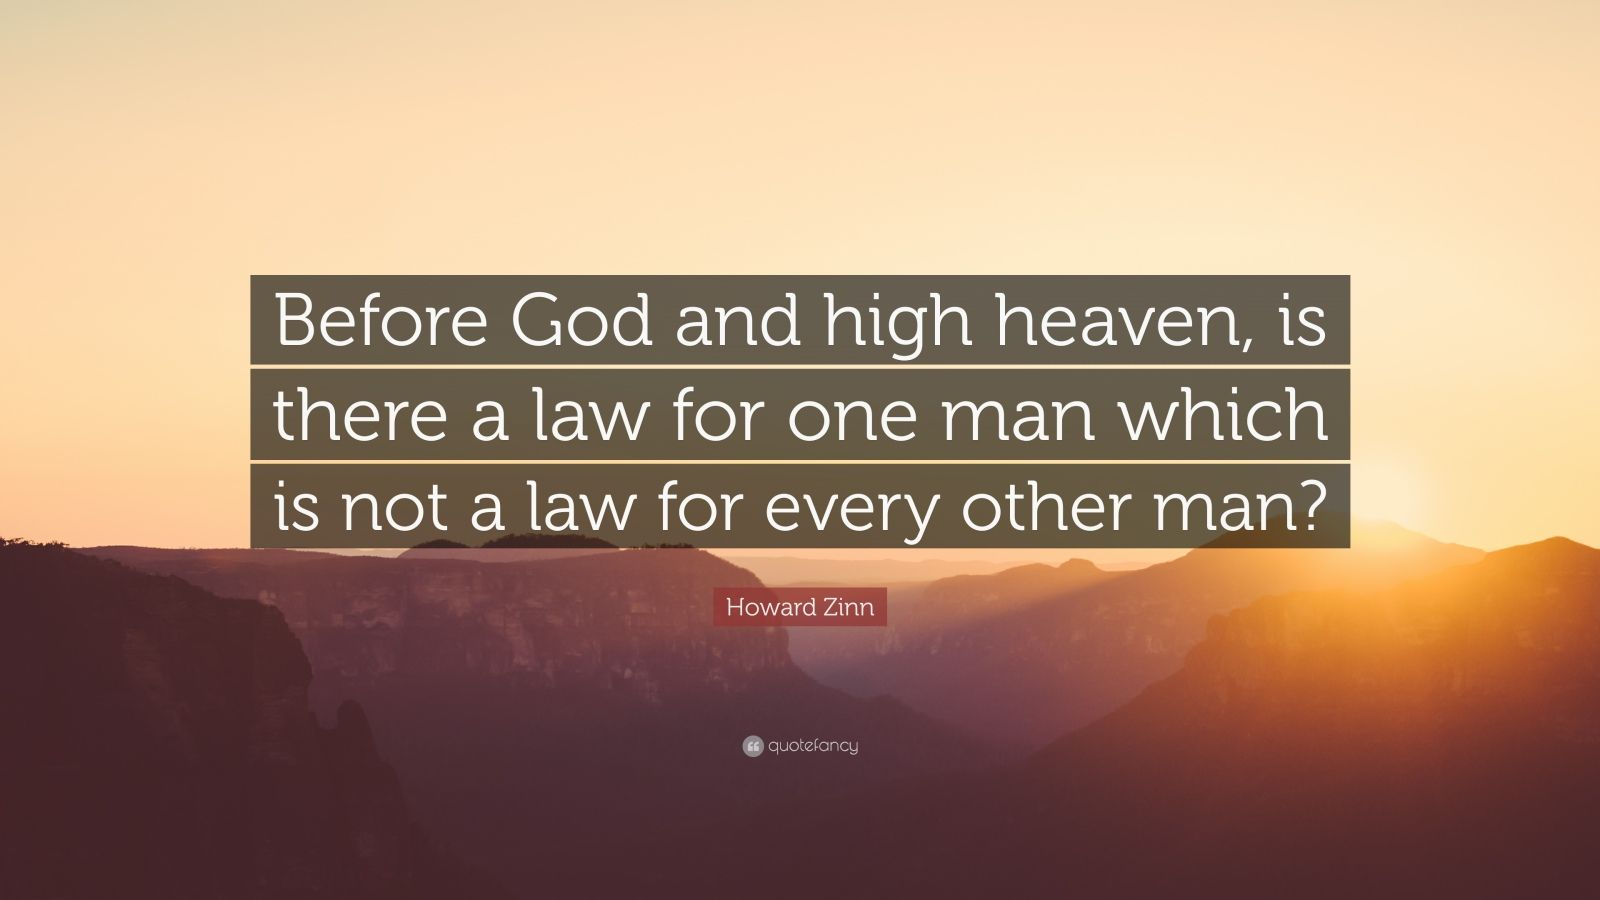 """Howard Zinn Quote: """"Before God and high heaven, is there a law for one man which is not a law for every other man?"""""""